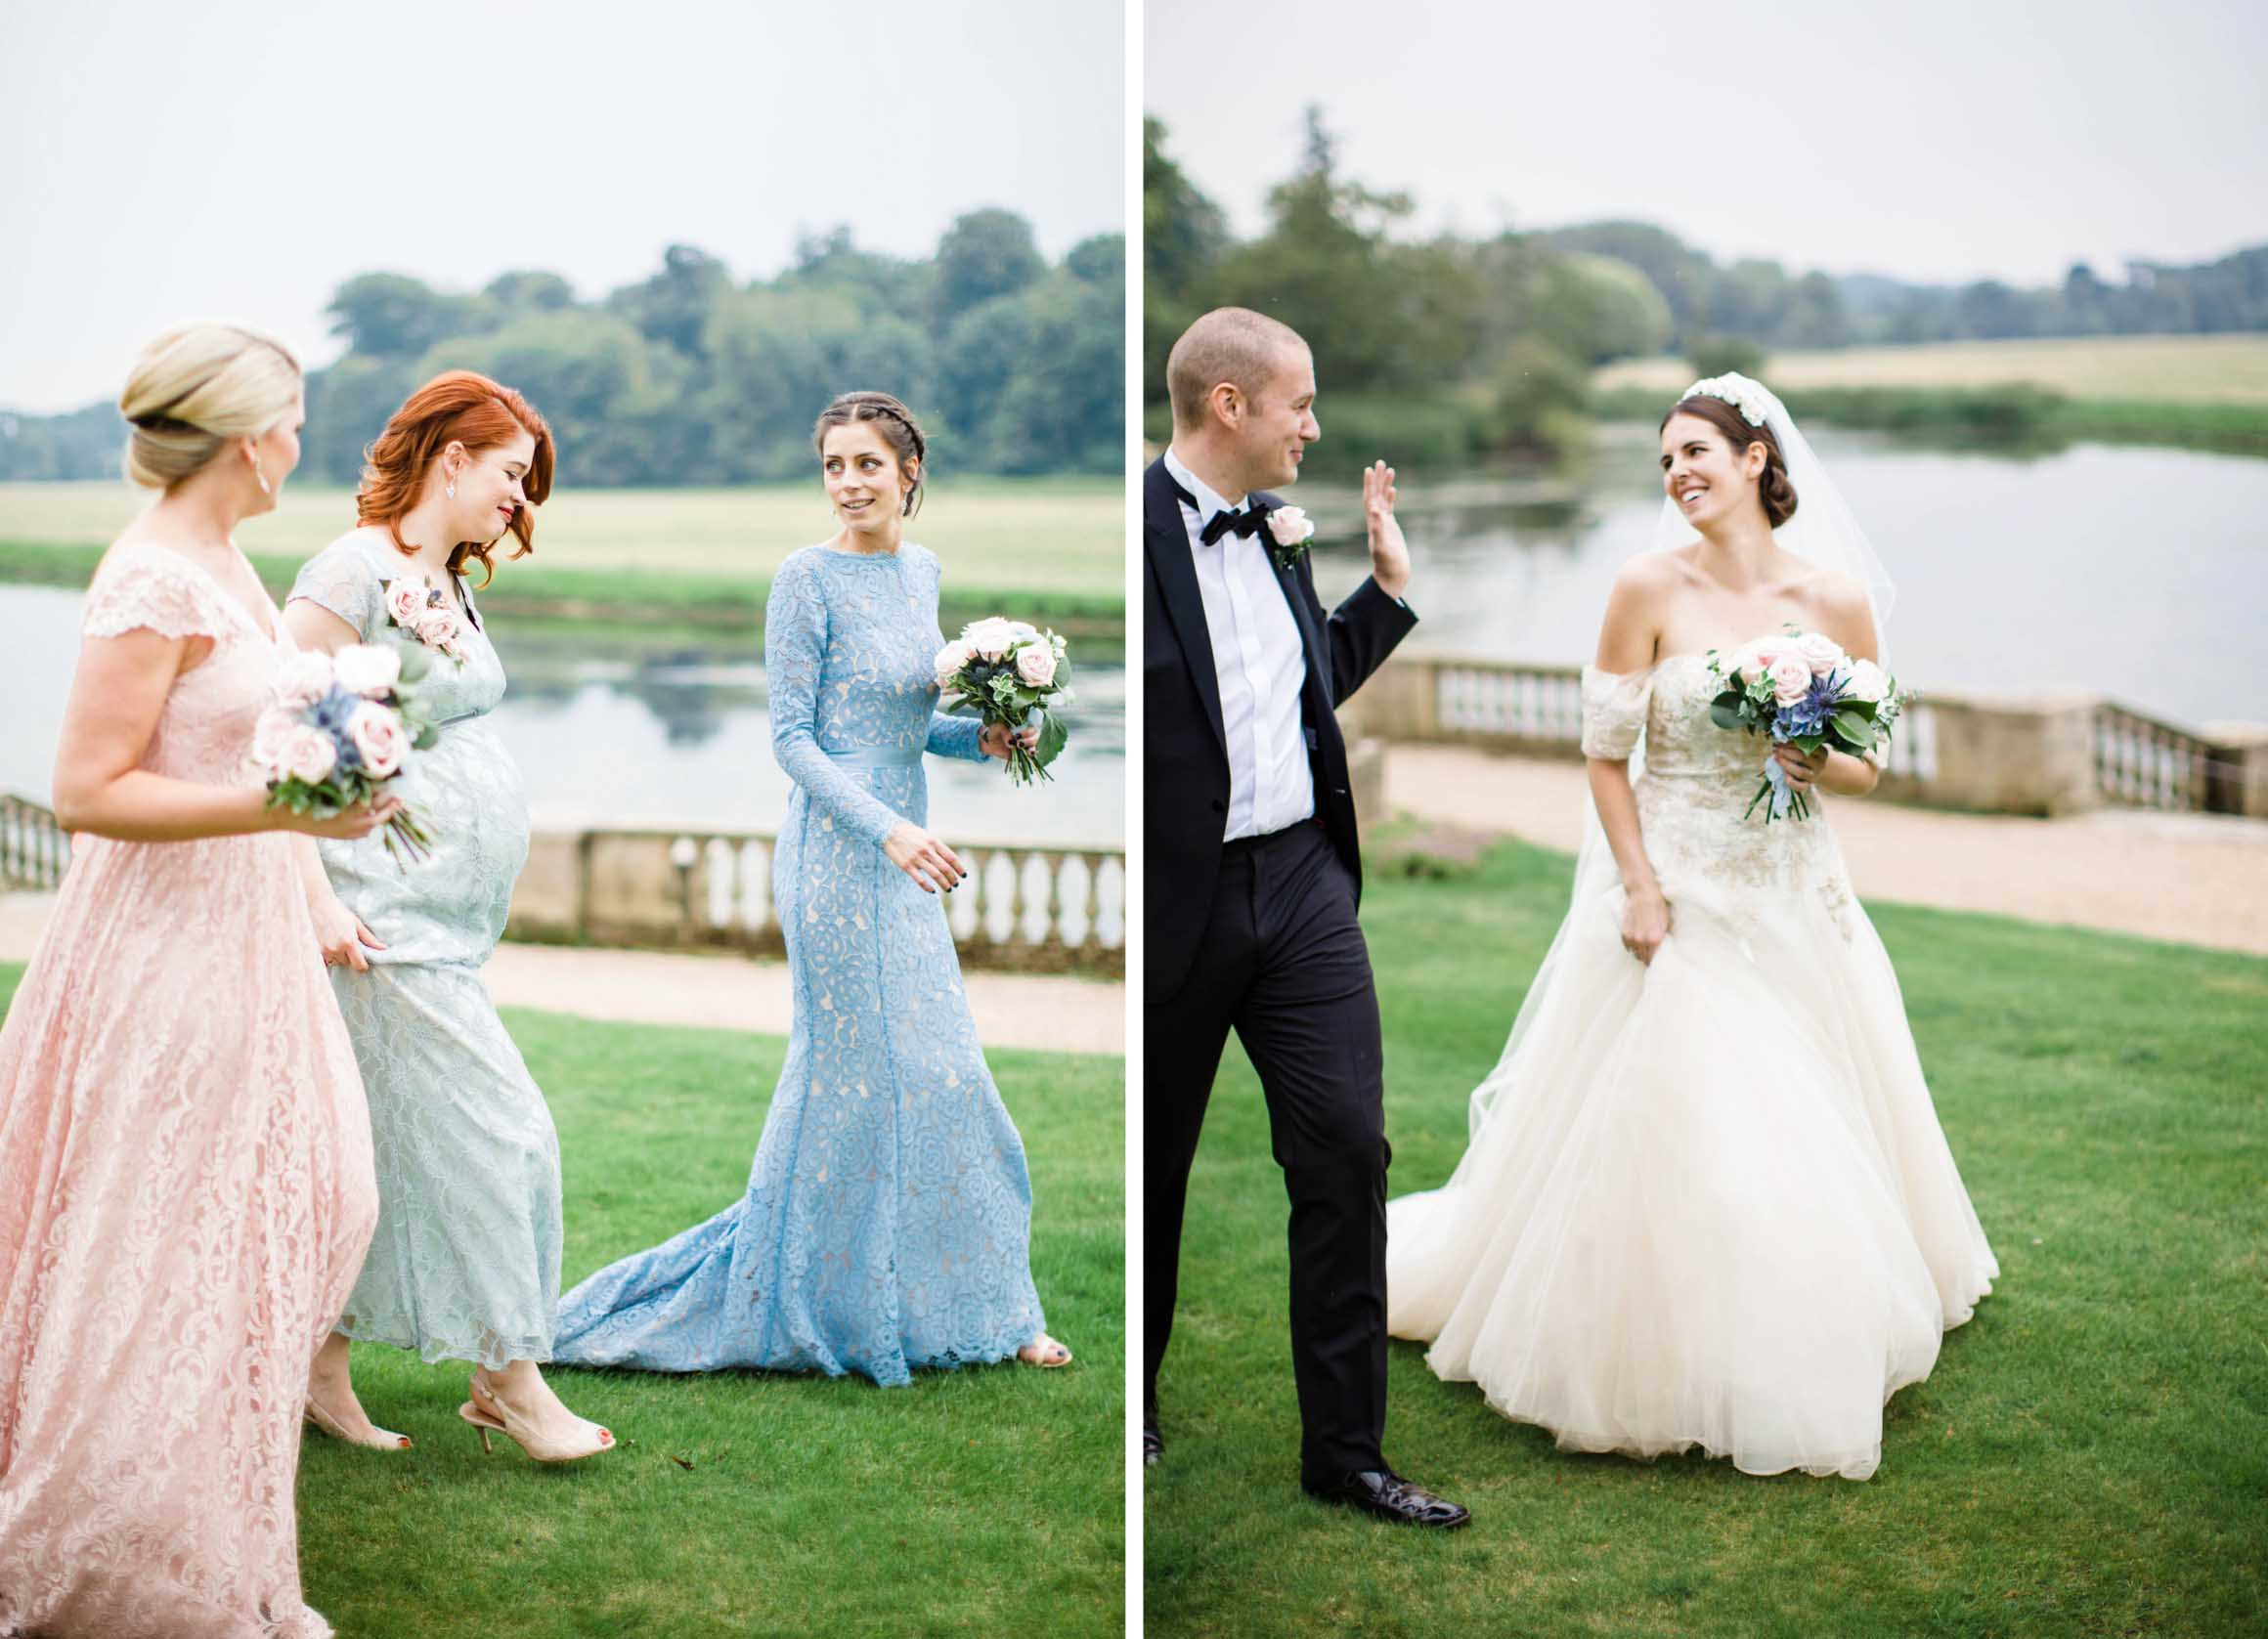 Amy O'Boyle Photography- Destination & UK Fine Art Film Wedding Photographer- Stoneleigh Abbey Wedding 8.jpg